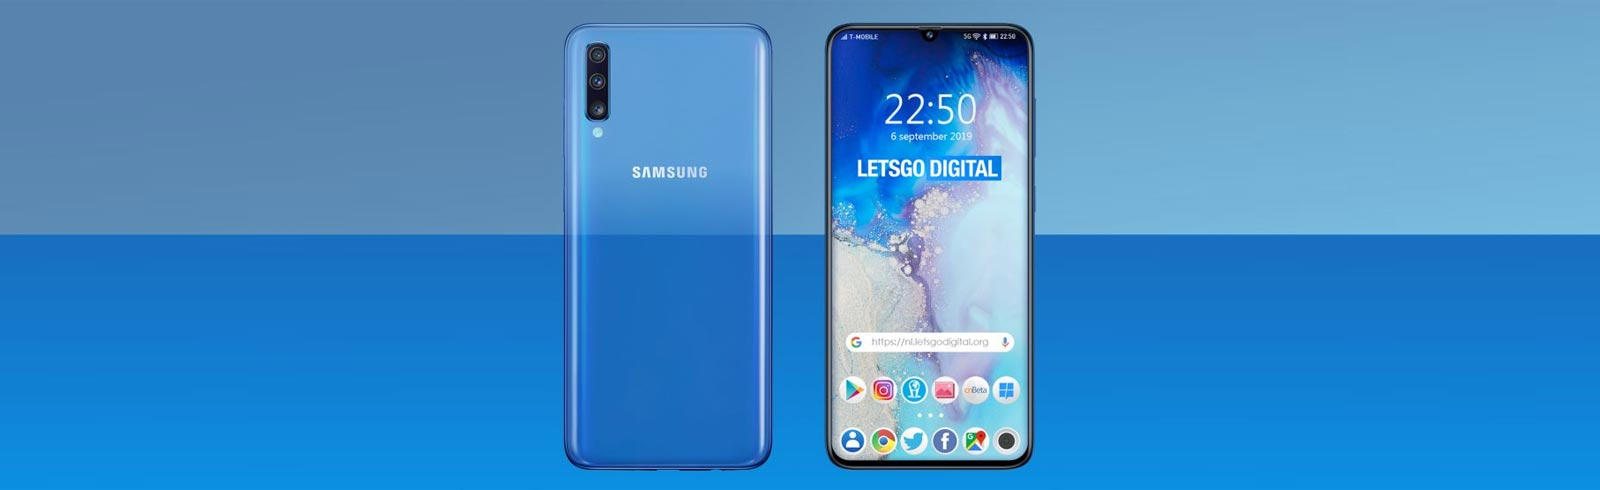 Samsung Galaxy A90 specifications leak